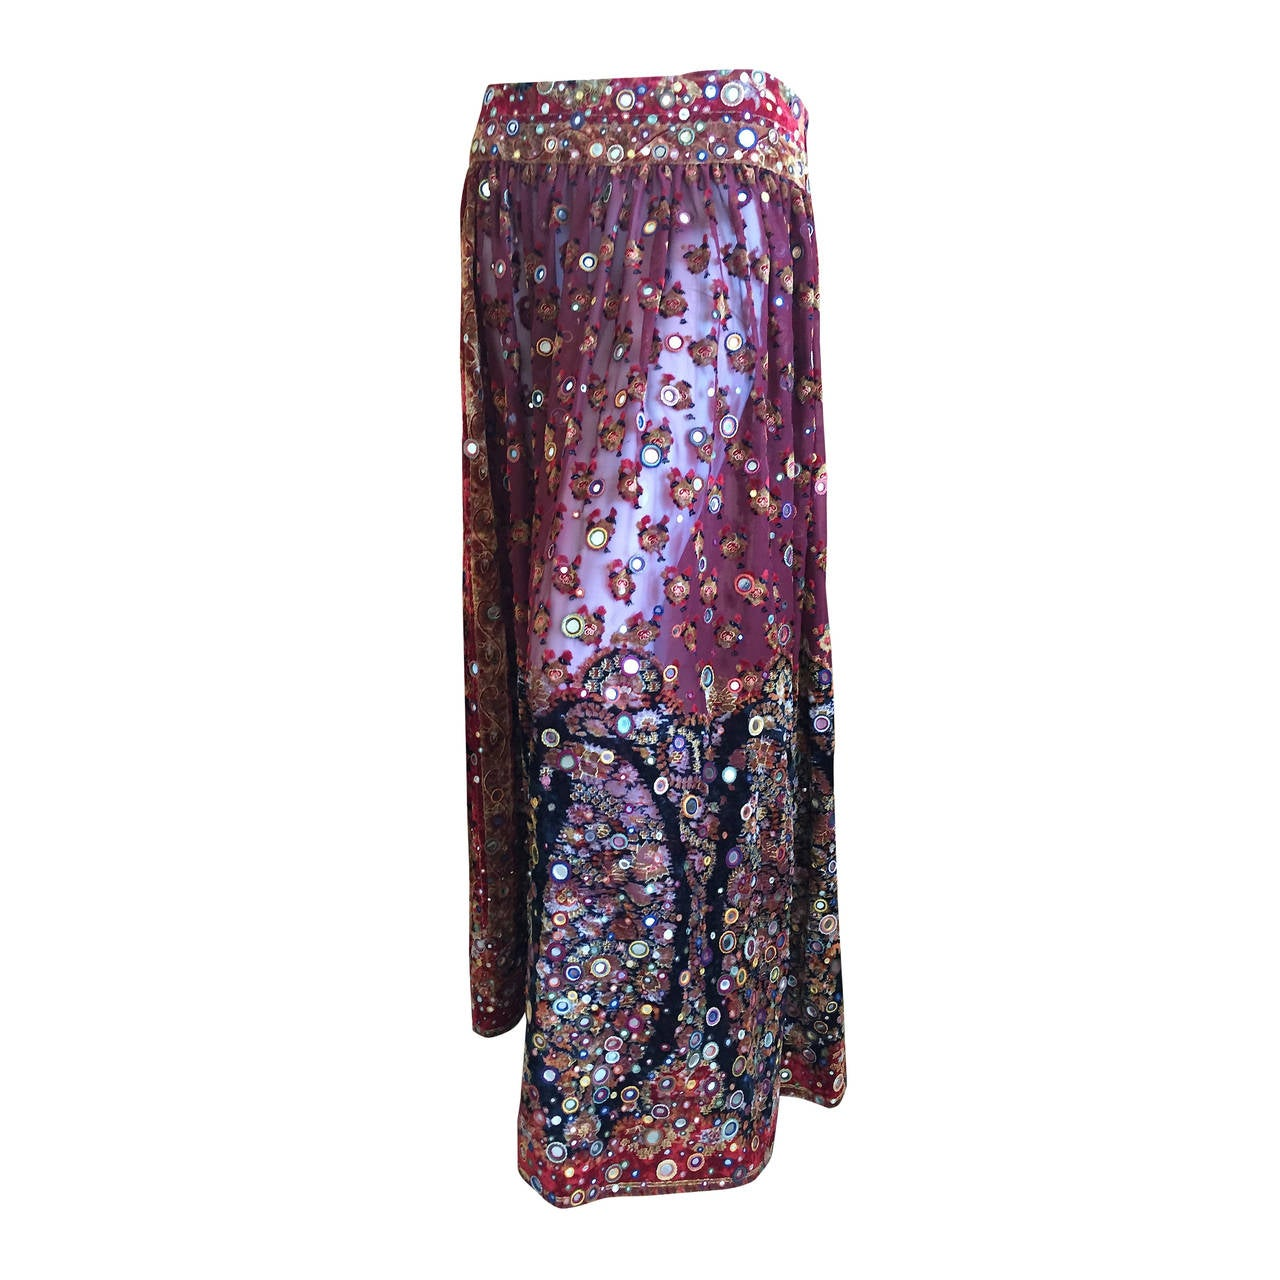 Oscar de la Renta Vintage Boho Gypsy Skirt with Mirrors 1